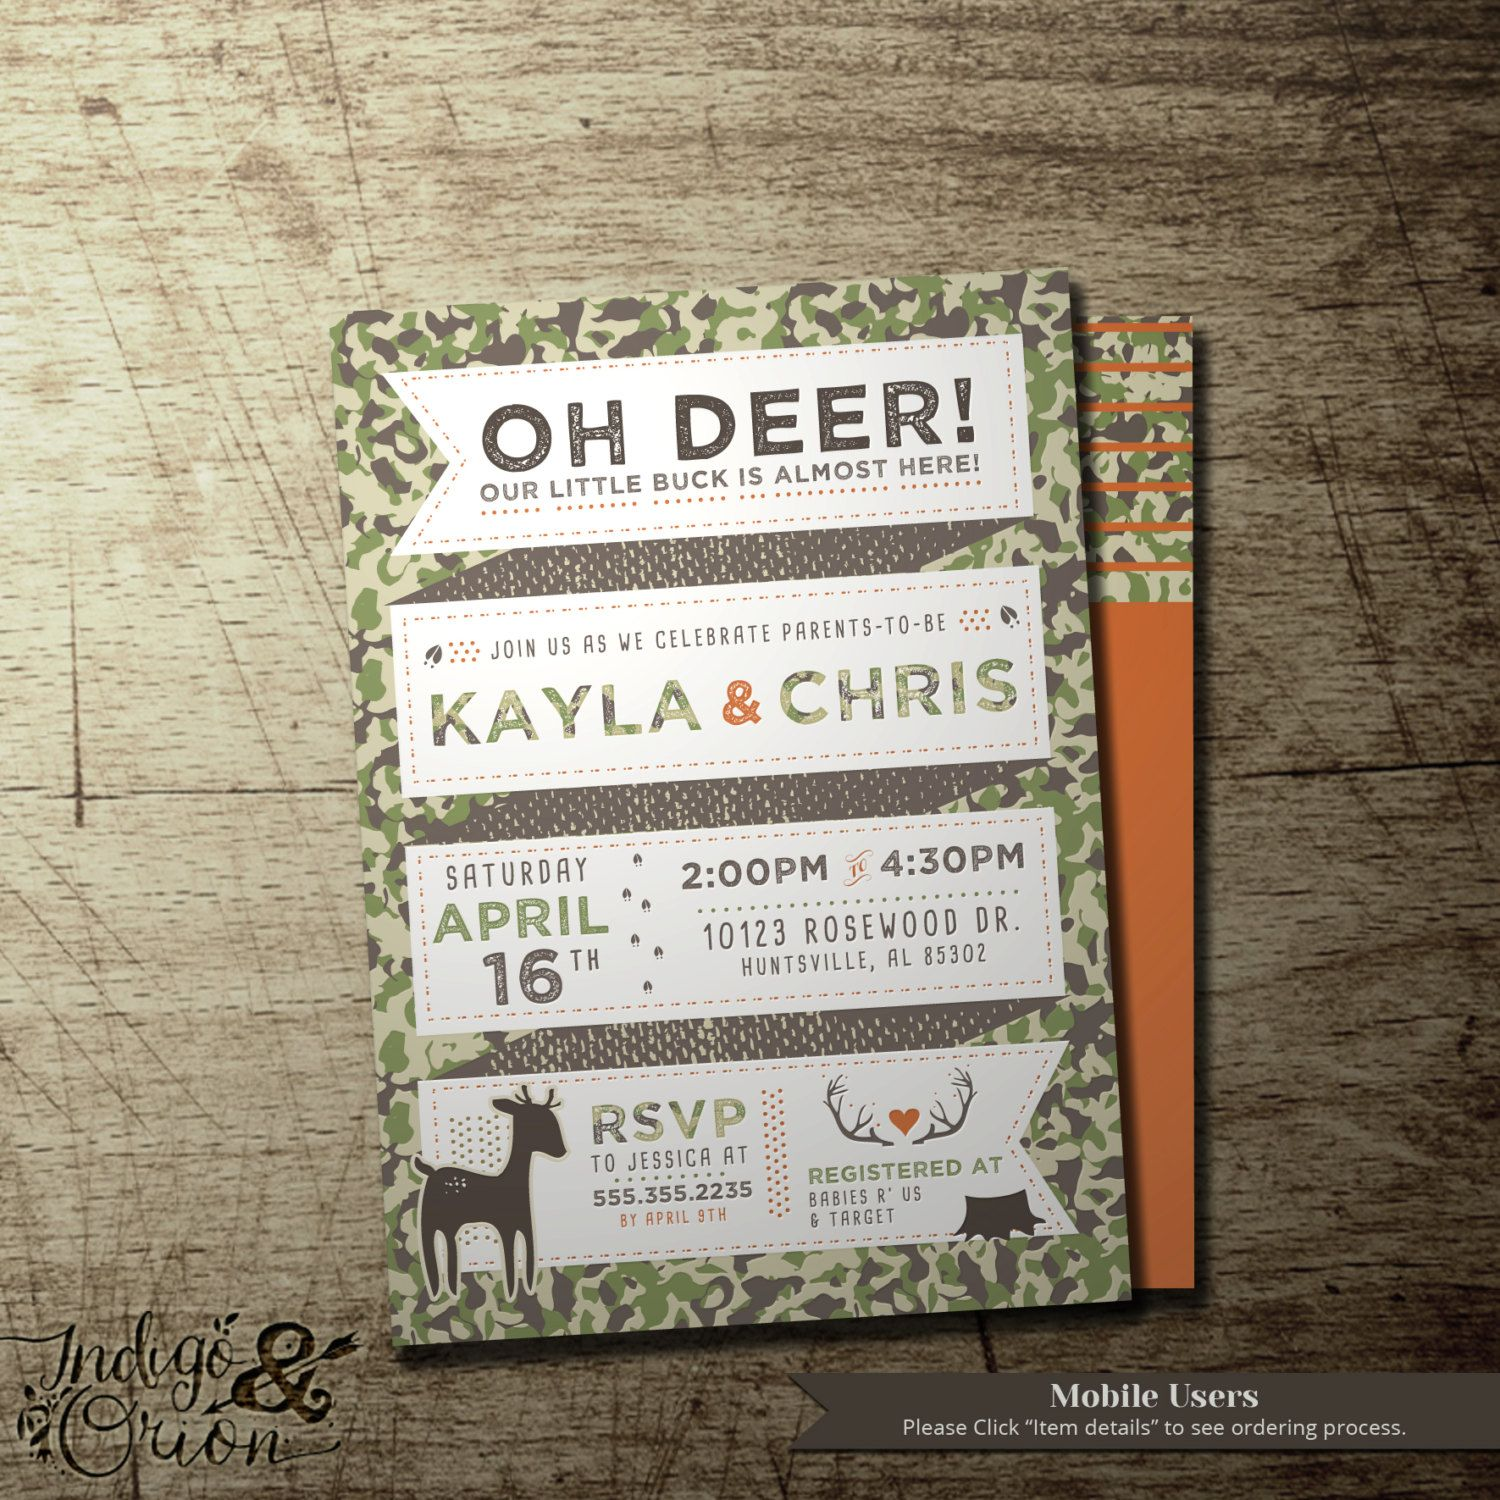 Camo baby shower invitation oh deer co-ed couples baby shower   Co ...